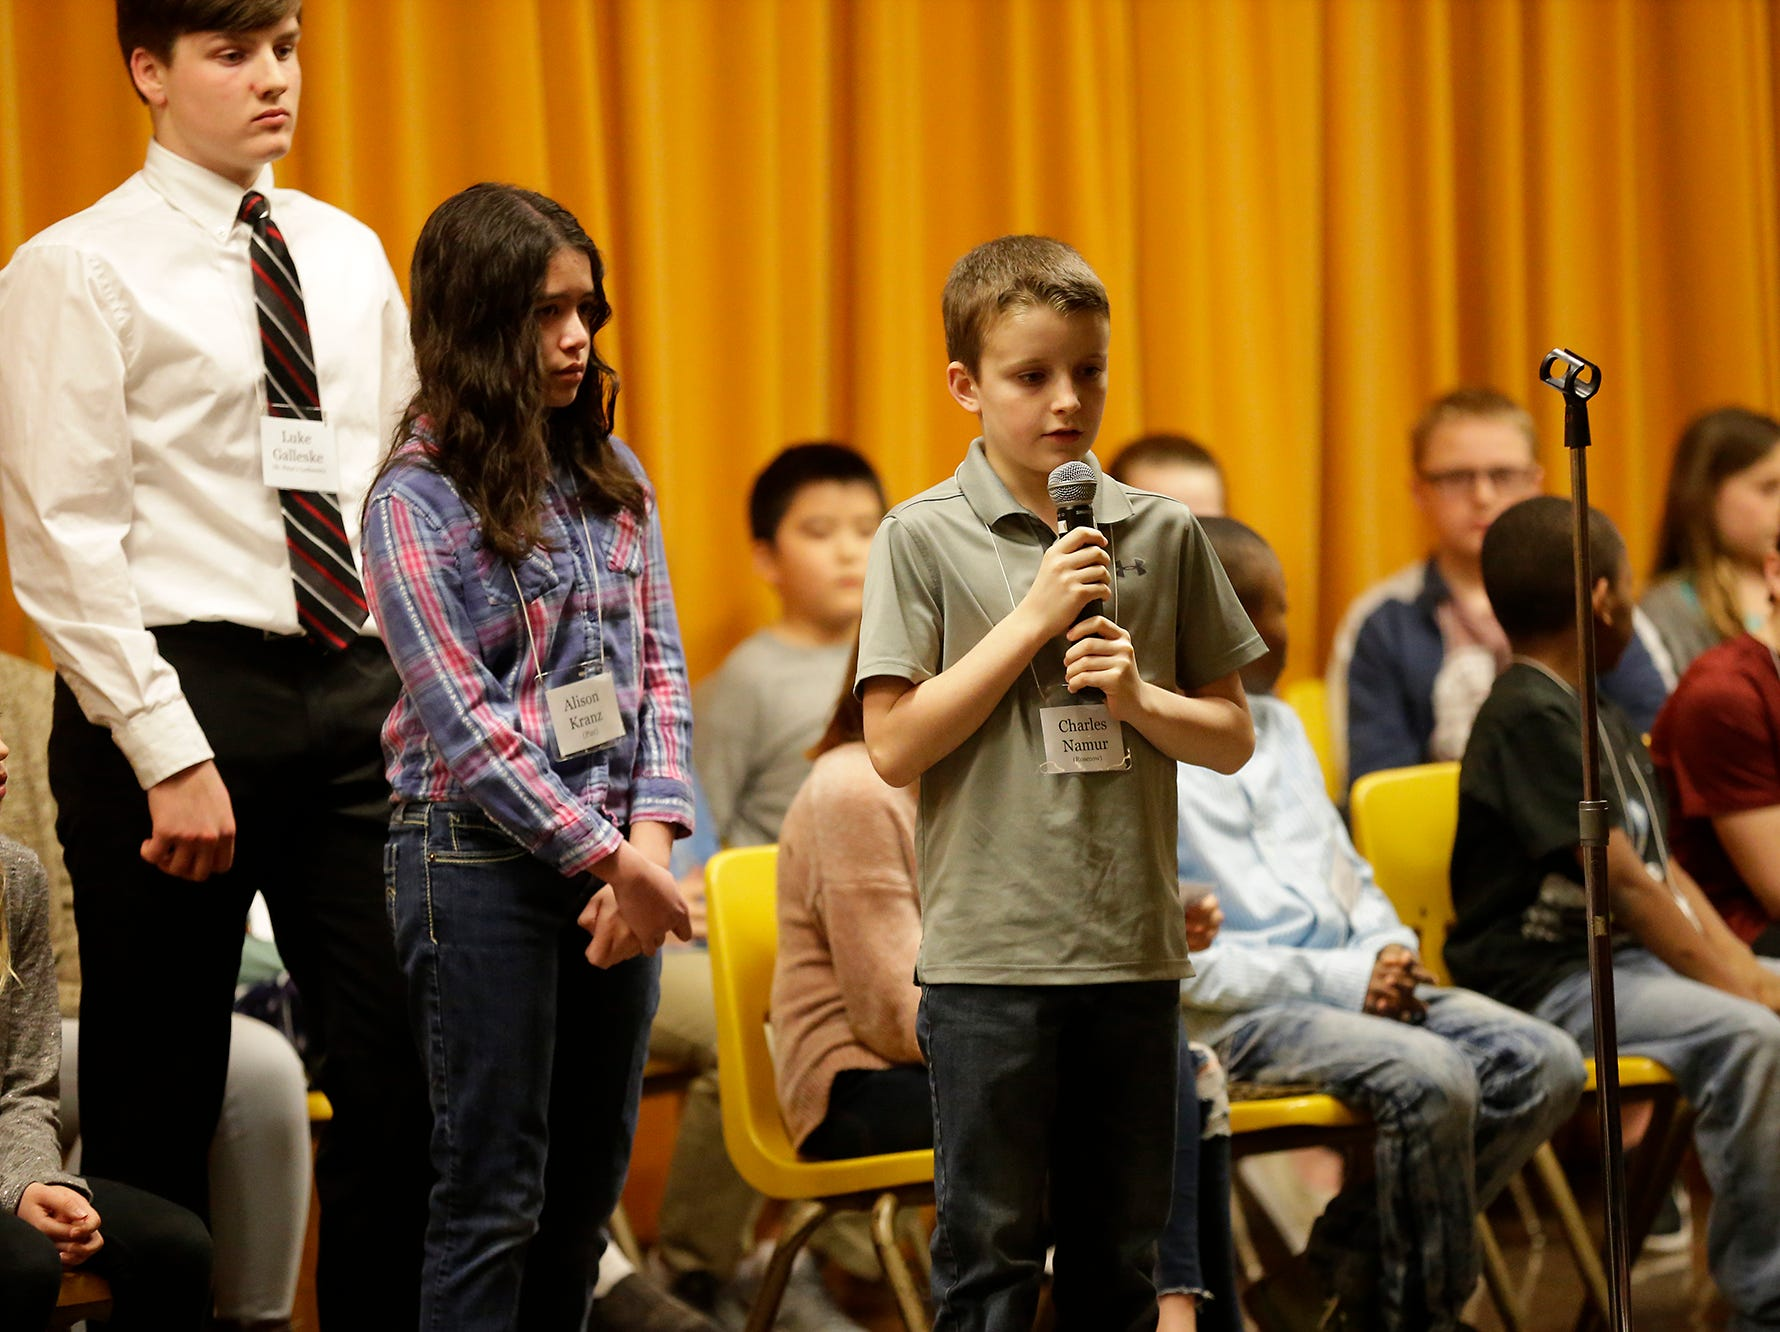 Charles Namur of Rosenow competes in the Fond du Lac citywide spelling bee Tuesday, February 26, 2019 at These Middle School in Fond du Lac, Wis. Doug Raflik/USA TODAY NETWORK-Wisconsin